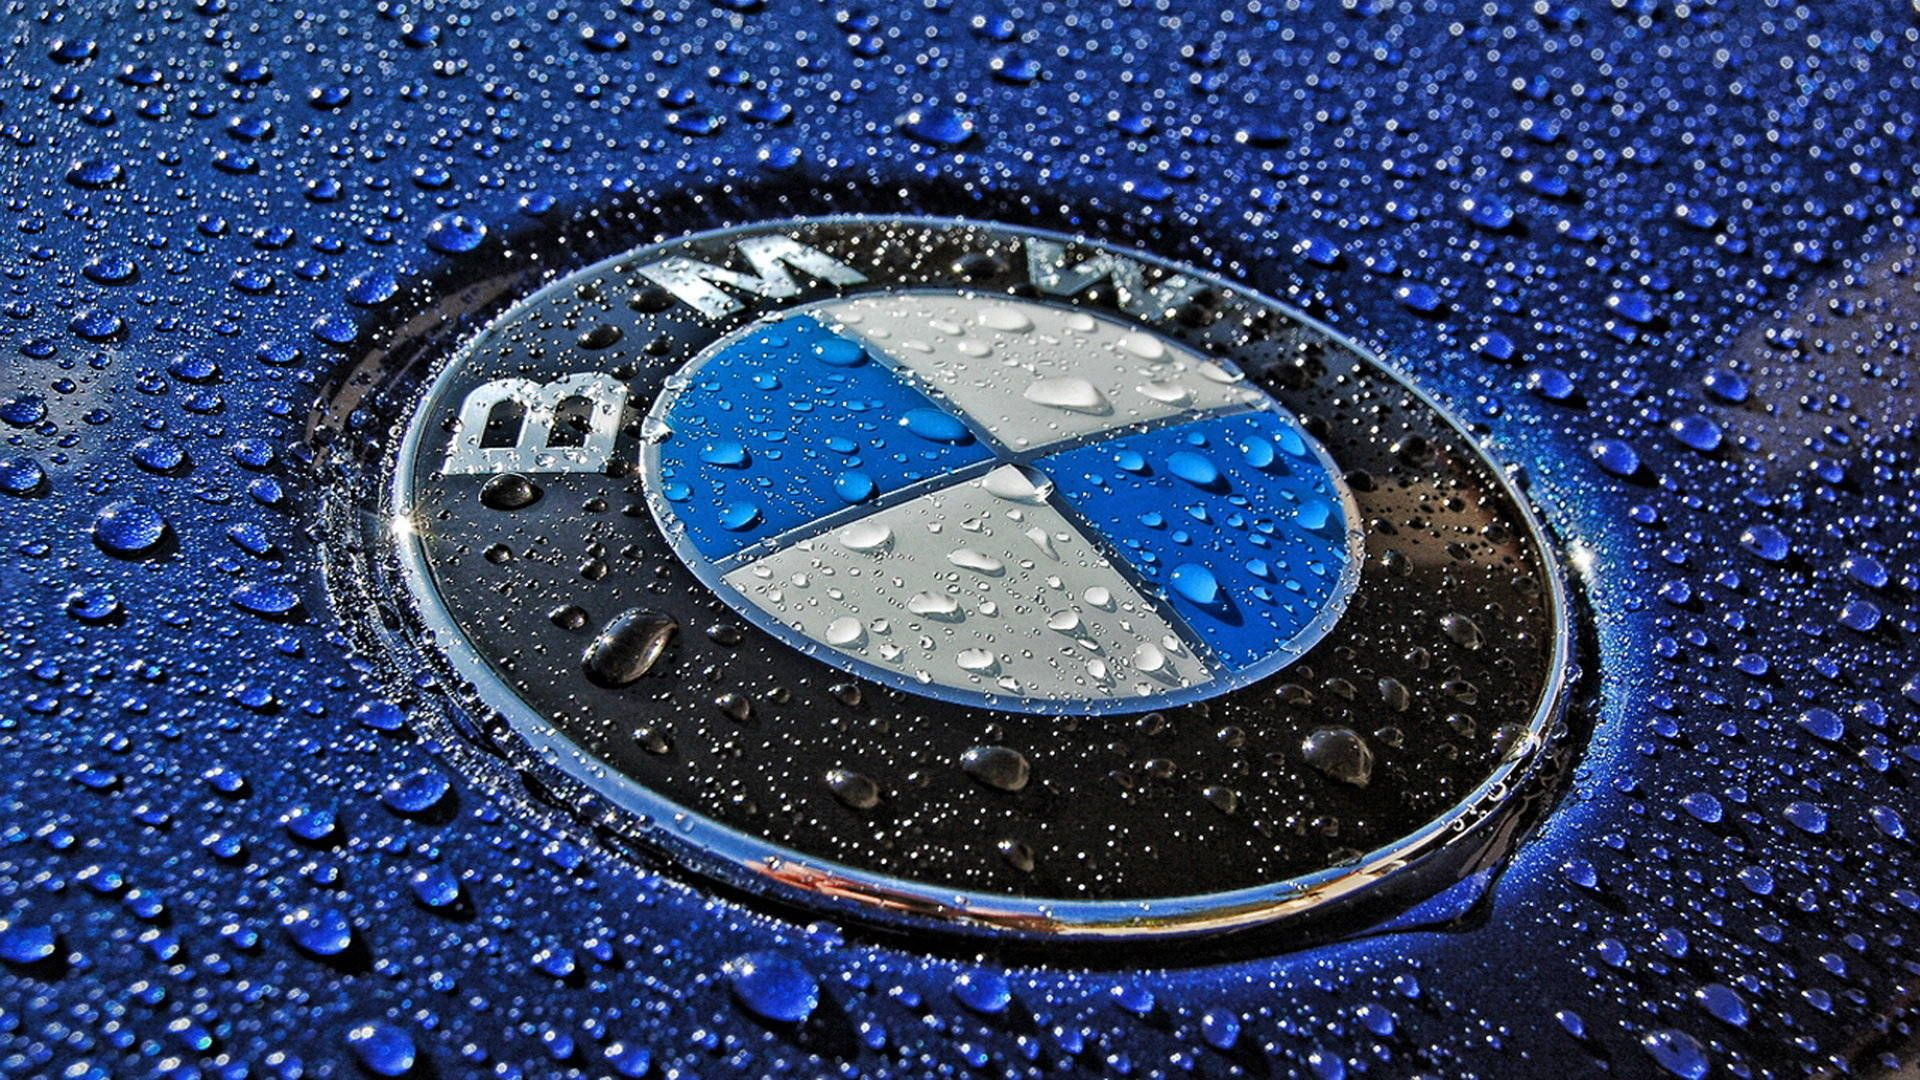 BMW Logo Wallpaper HD 1080p Wallpaper | BMW 4 EVER in 2019 ...